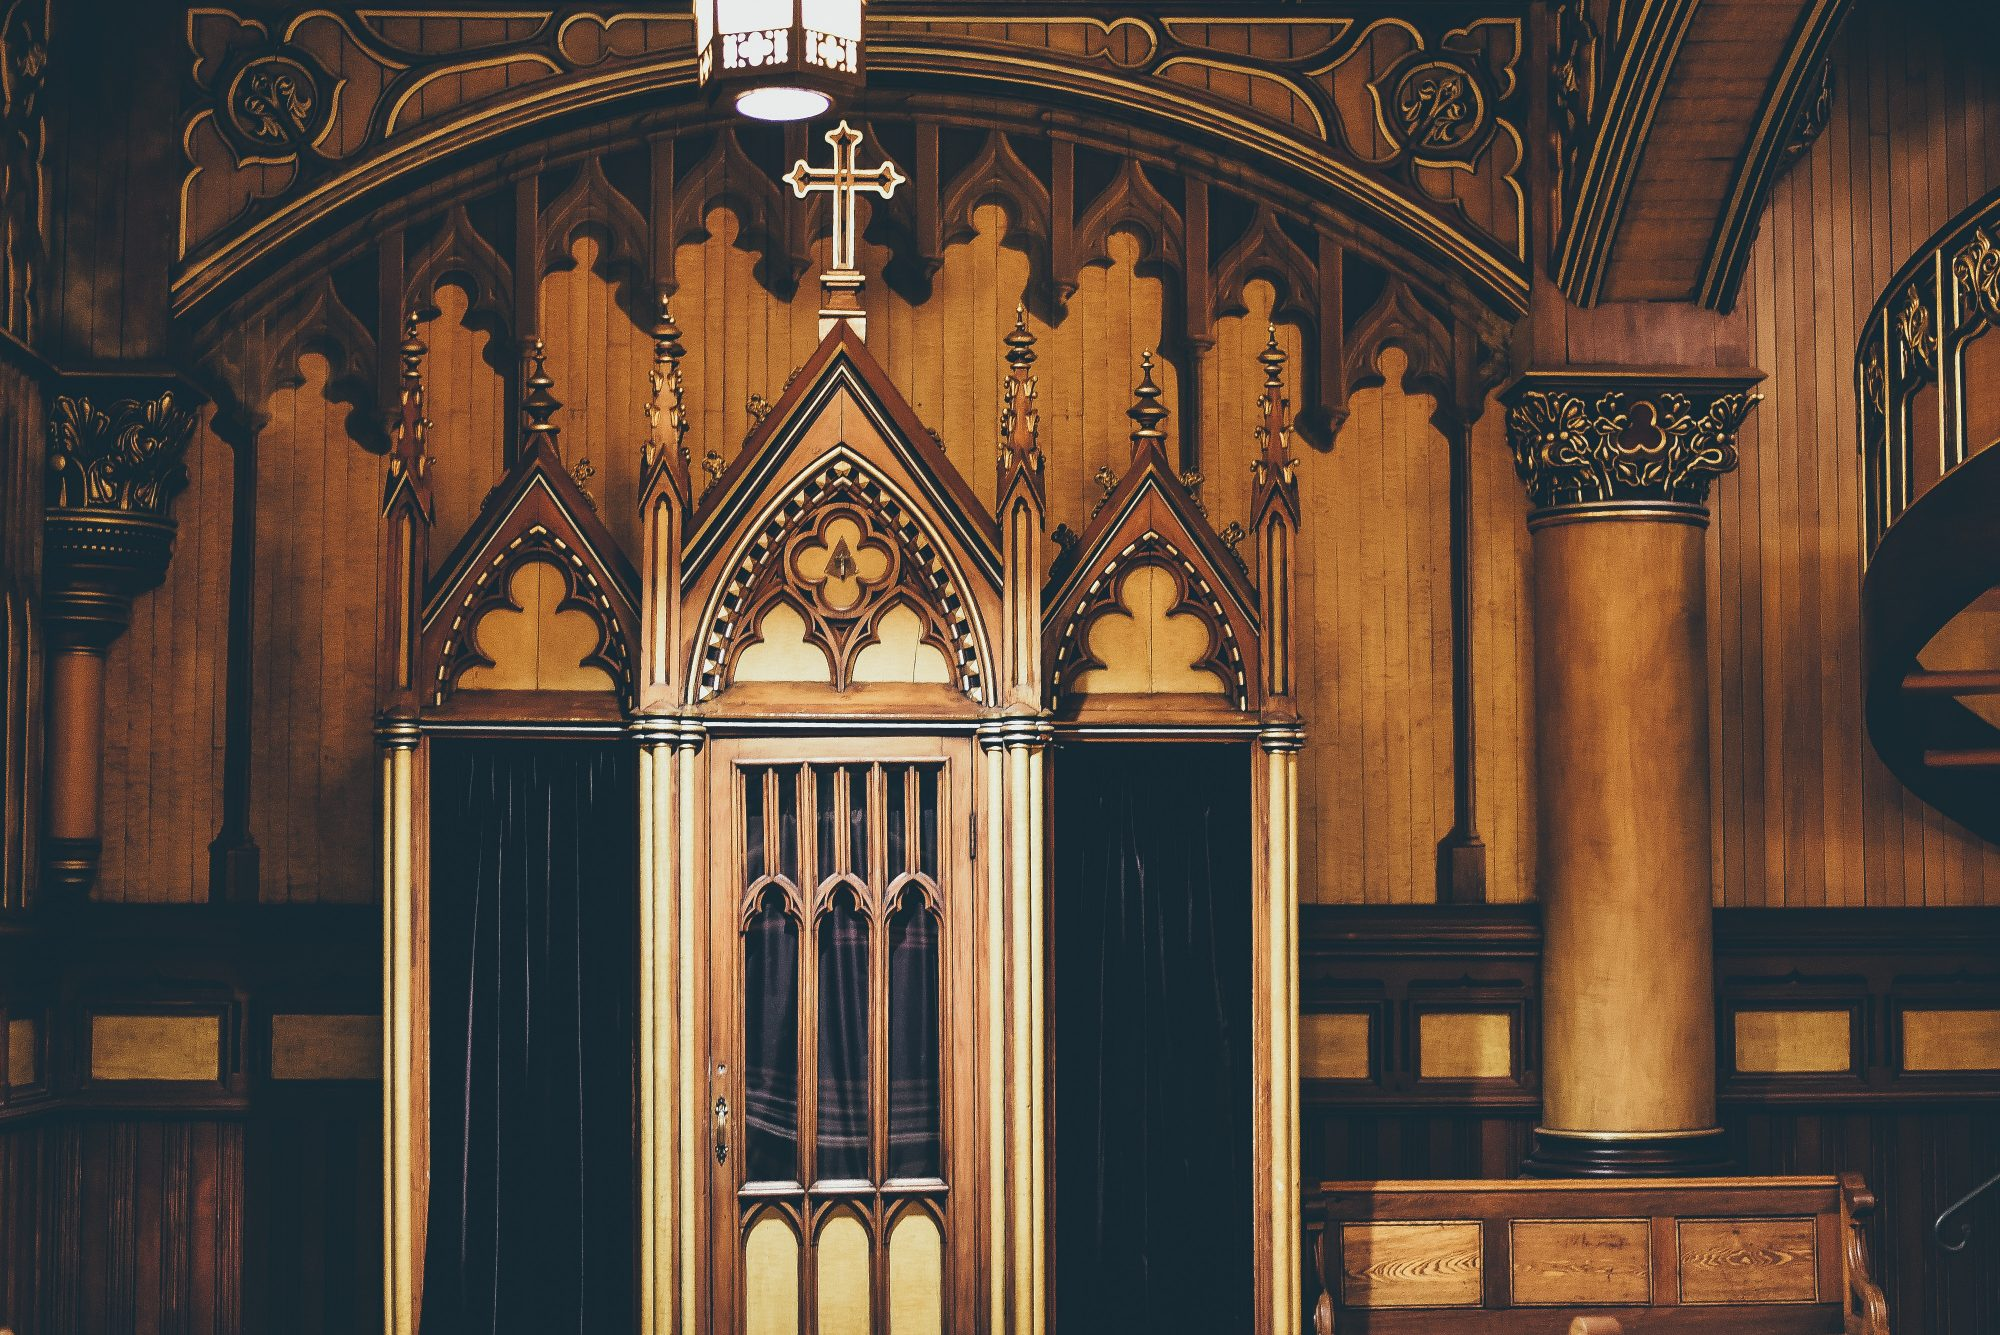 A Confessional Booth in Montréal, Canada